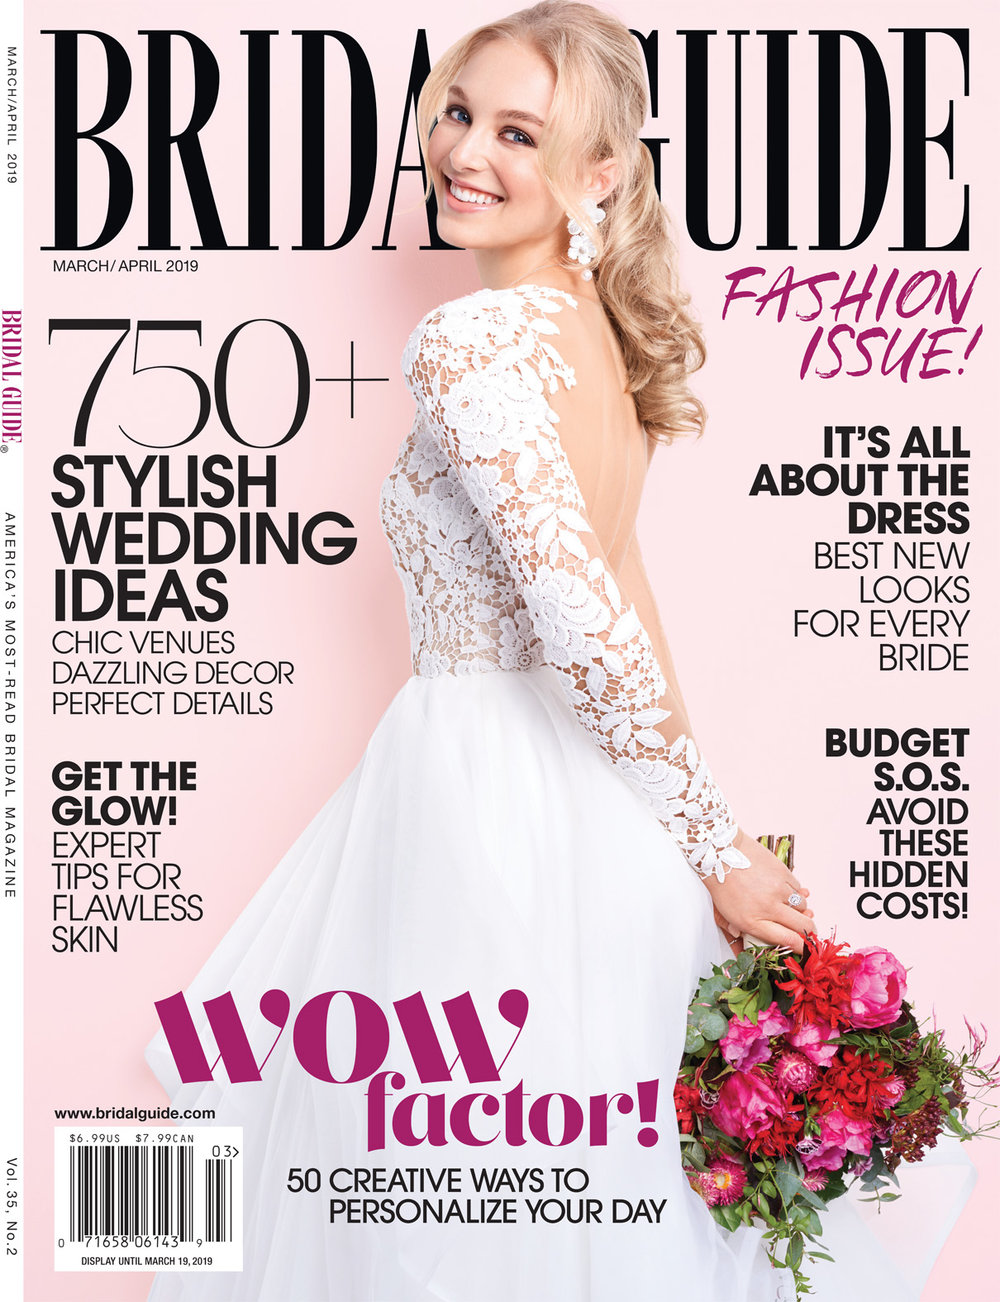 Bridal Guide 1903_US_CAN.jpg